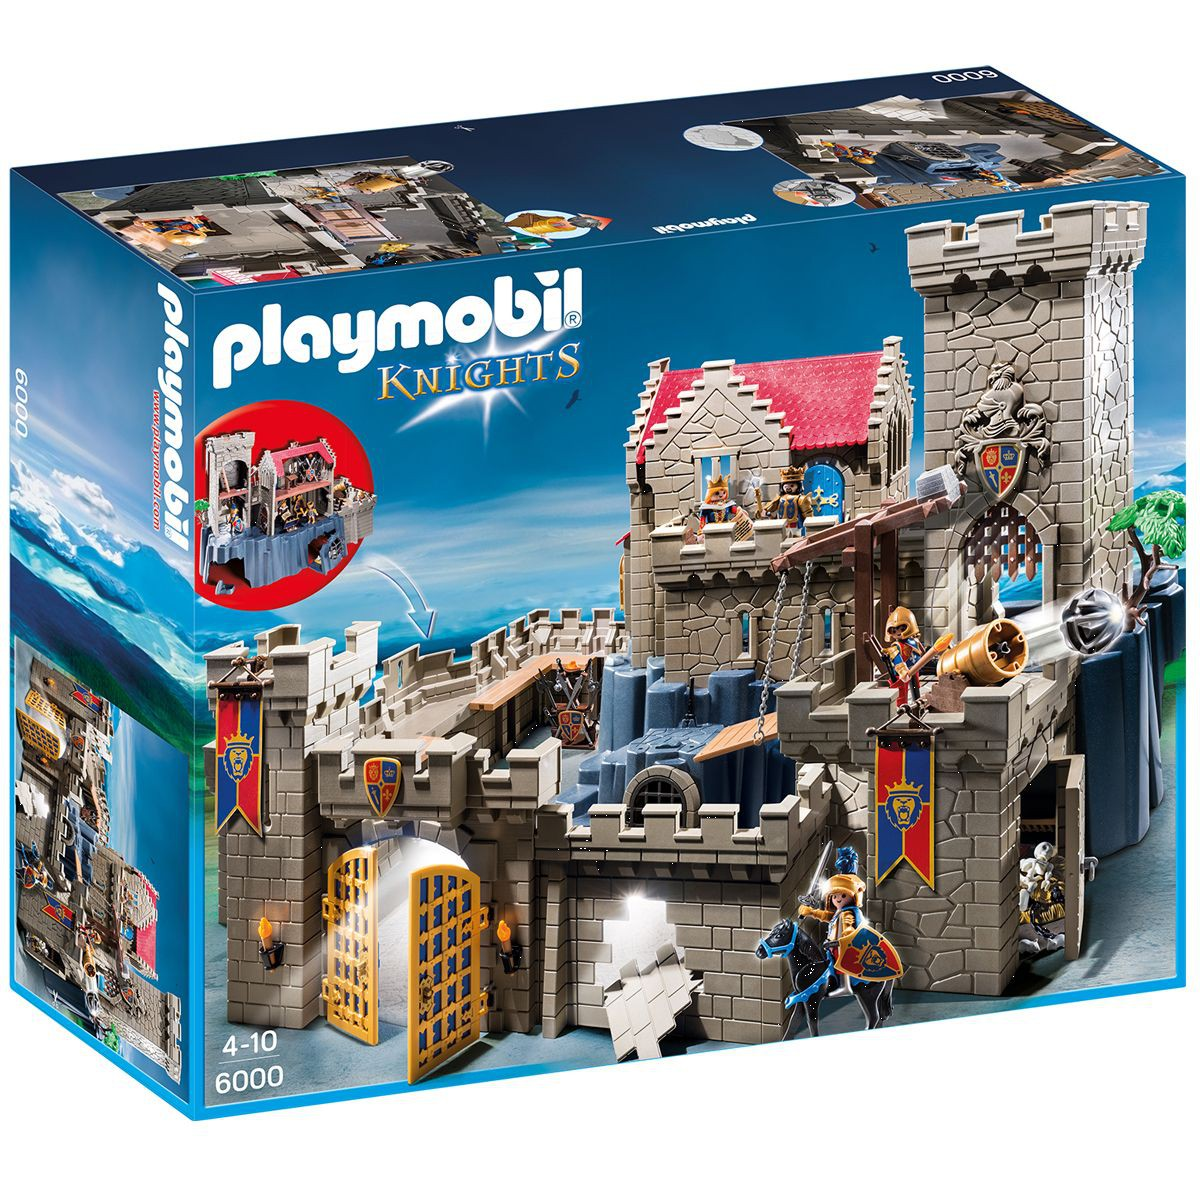 Chateau playmobil knights